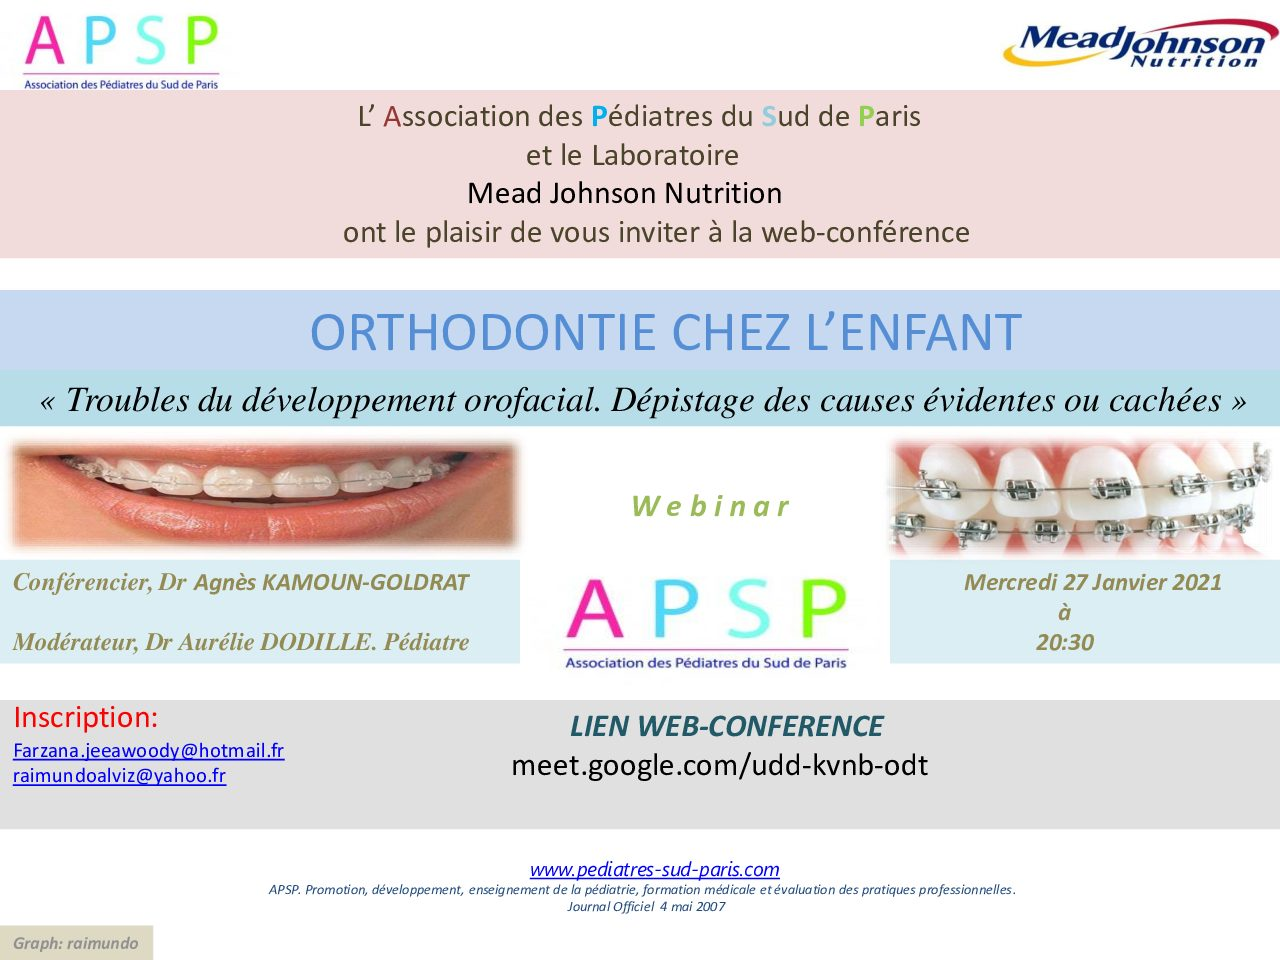 WEB-CONFERENCE 27 JANVIER 2021 ORTHODONTIE